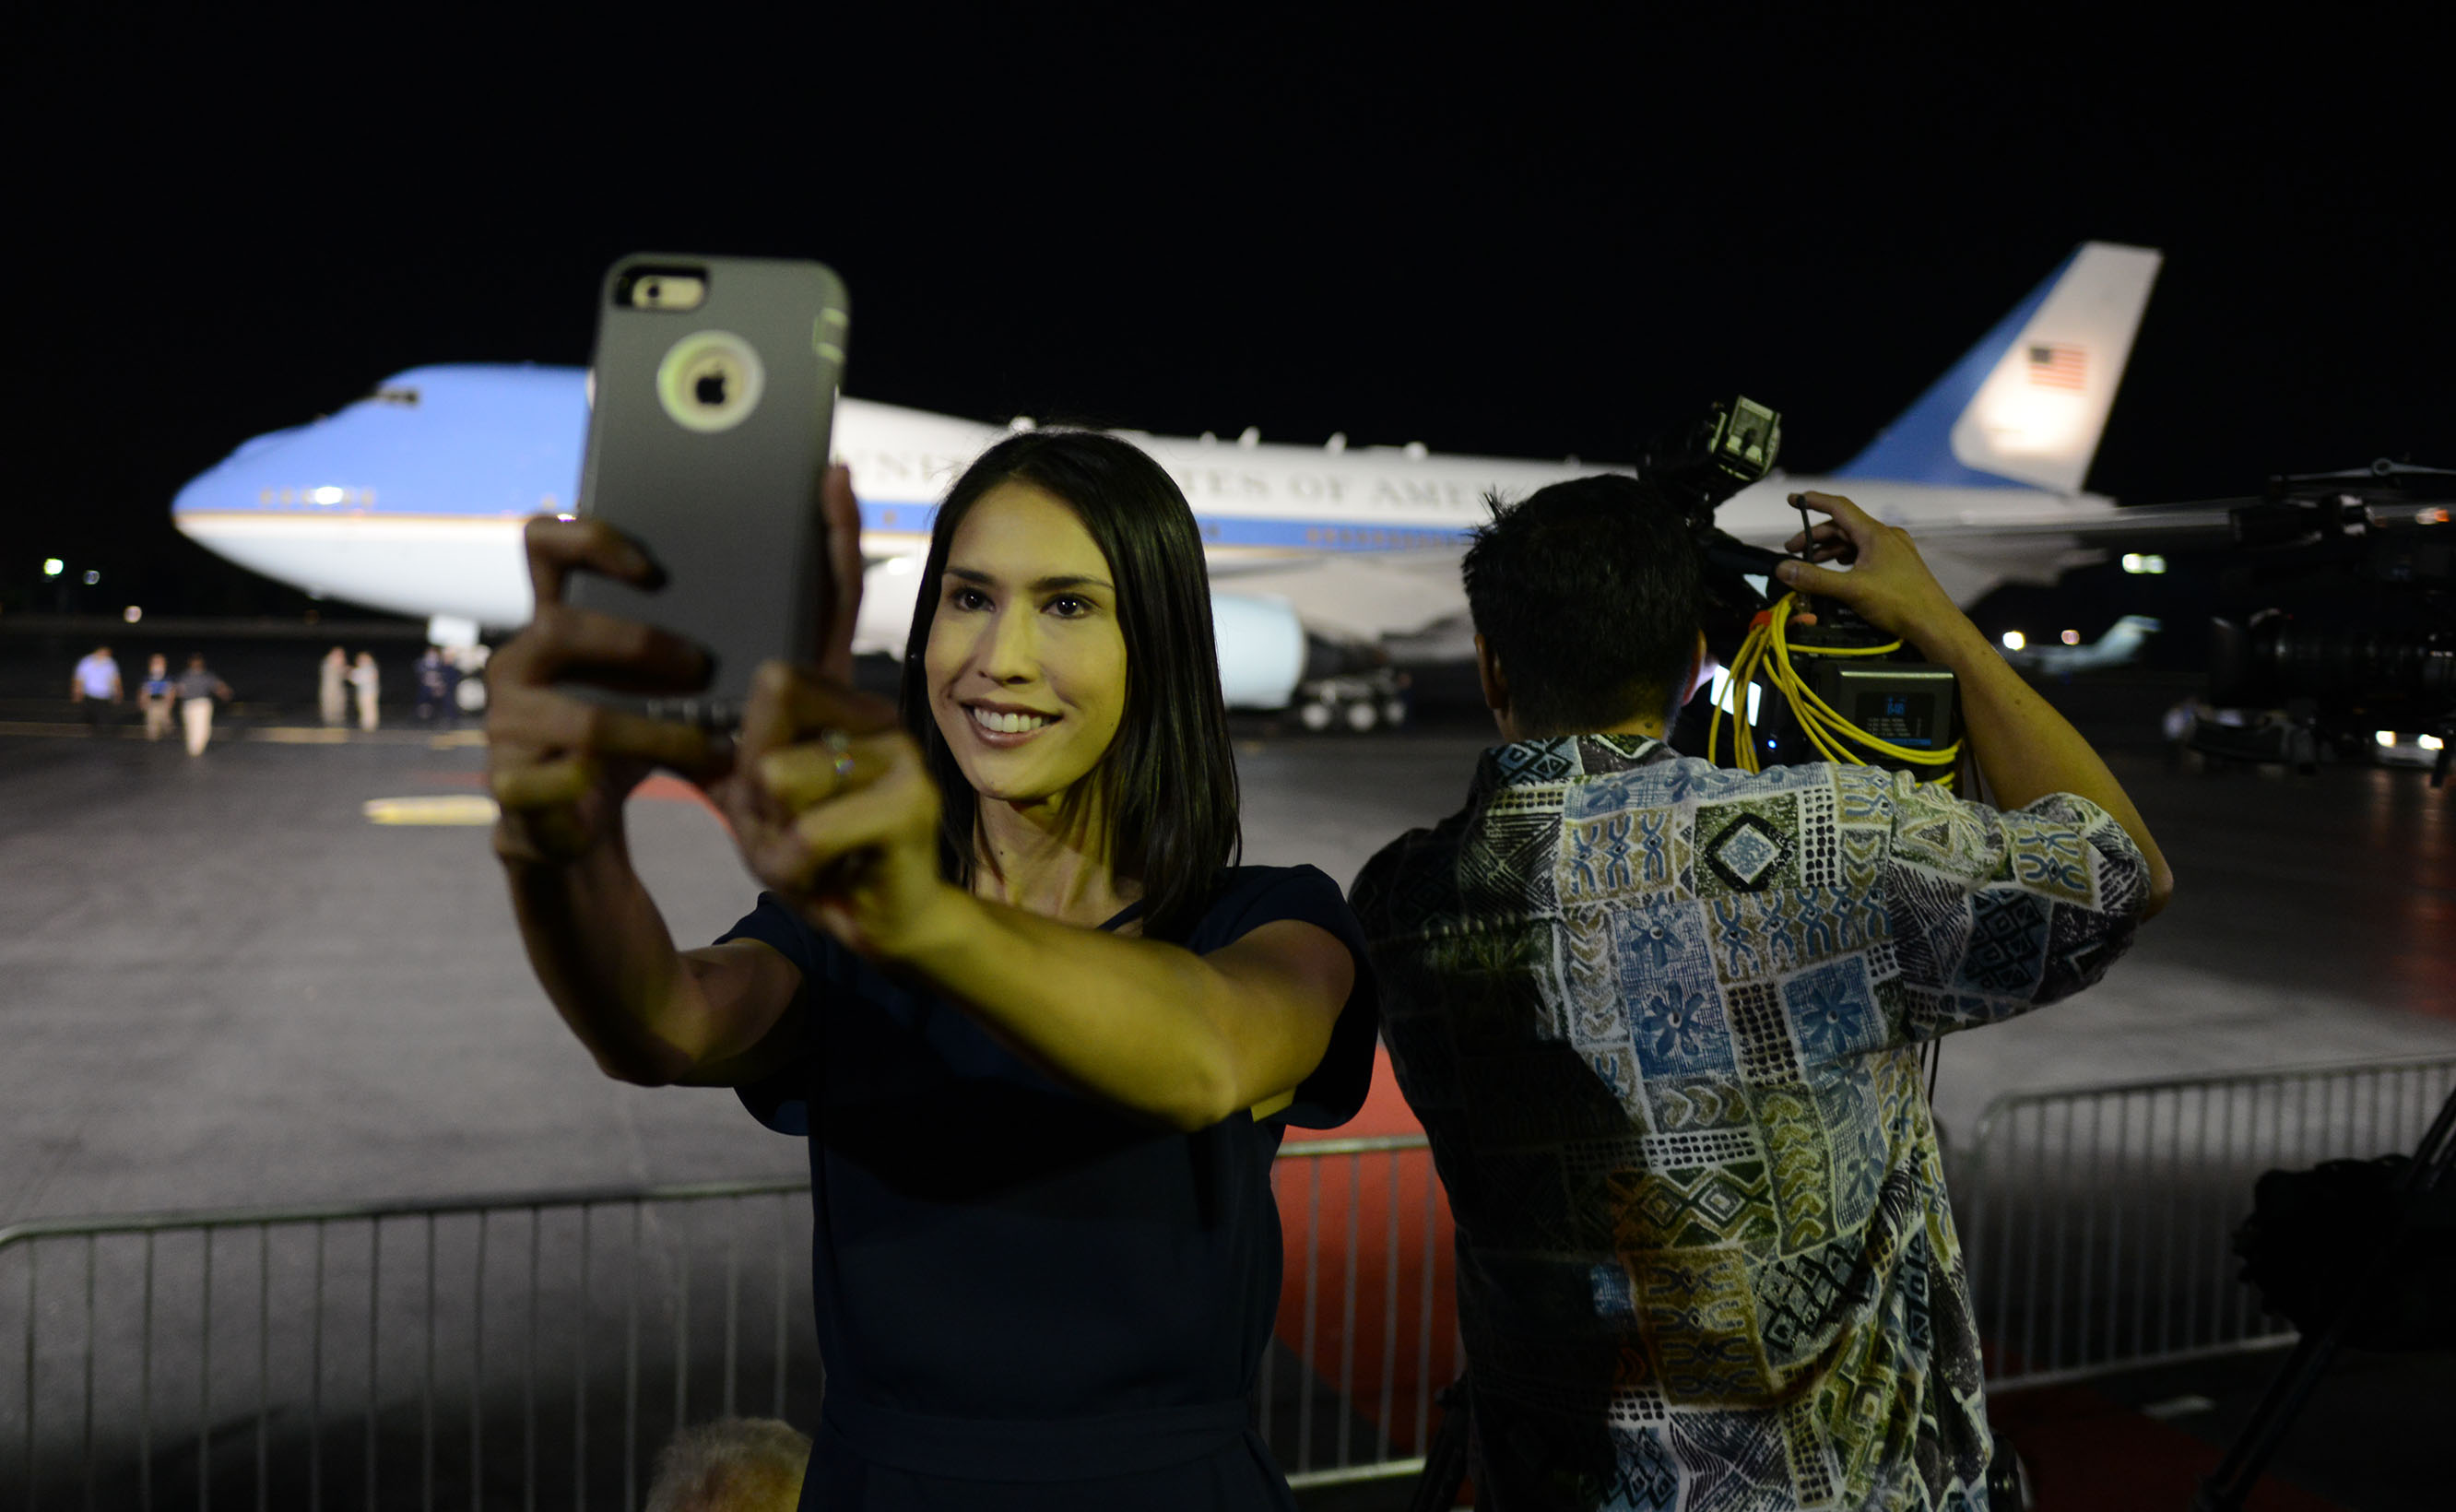 <p>Members of the local media on hand for presidential arrivals and/or departures sometimes shoot selfies during their down time. KHON reporter Sarah Yoro captures herself with Air Force One in the background on Dec. 19, 2014.</p>